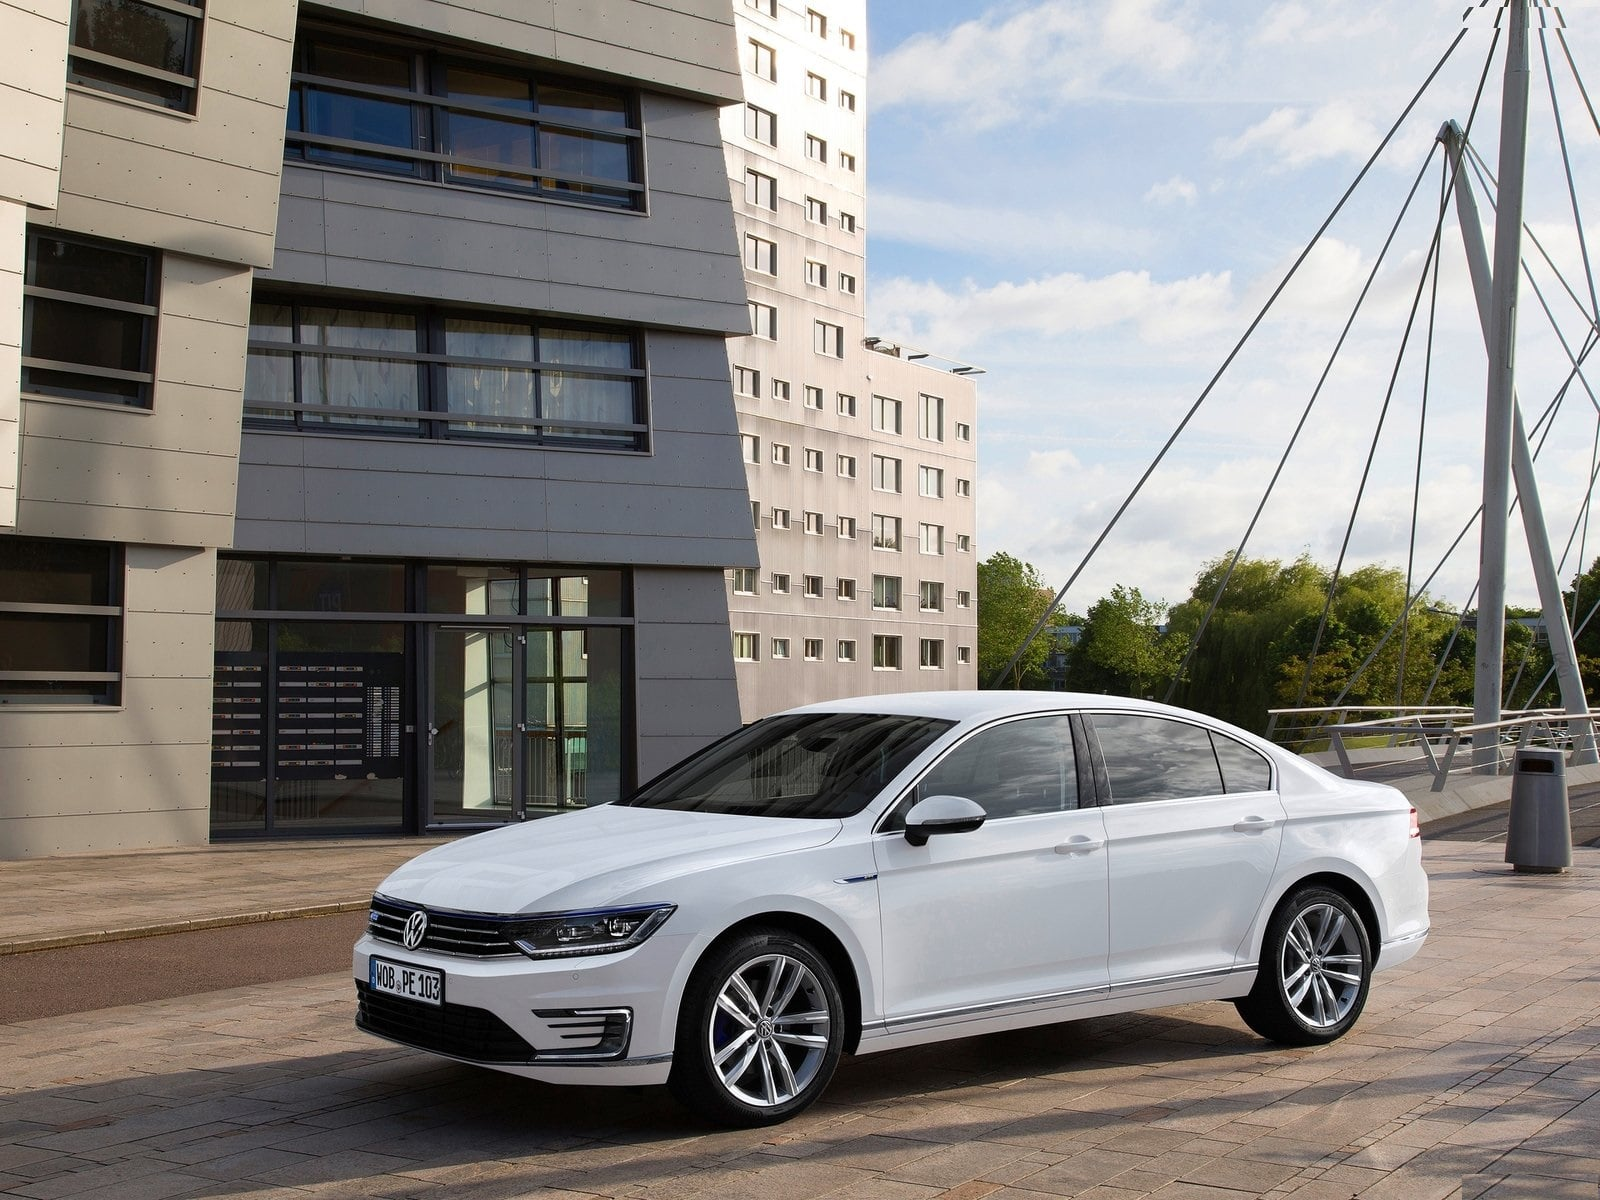 new 2017 volkswagen passat india price specifications features pics. Black Bedroom Furniture Sets. Home Design Ideas